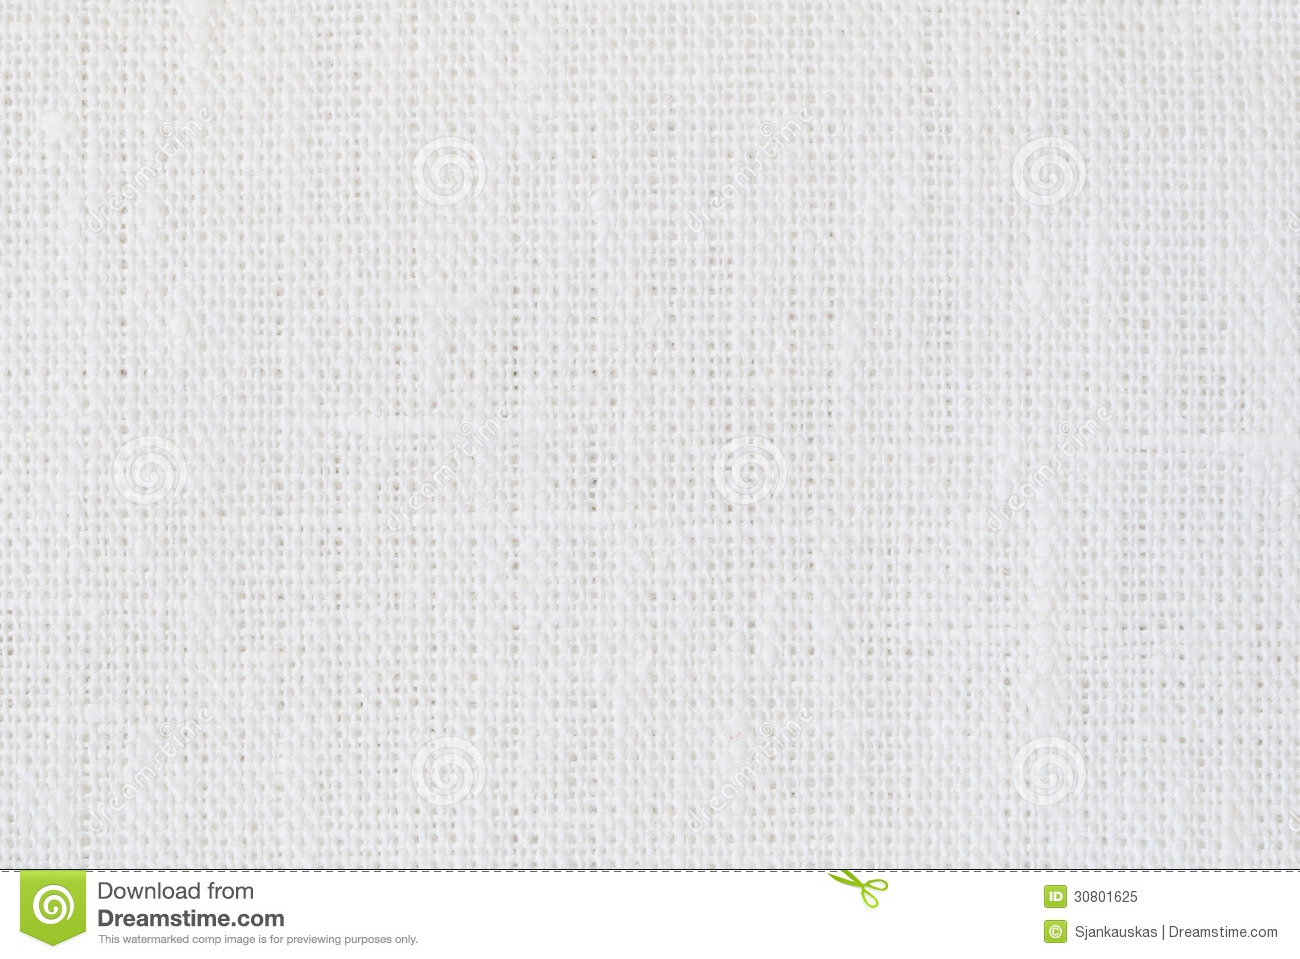 Linen Background Texture Free Stock Photos Download 9 467: White Linen Texture Background Stock Image